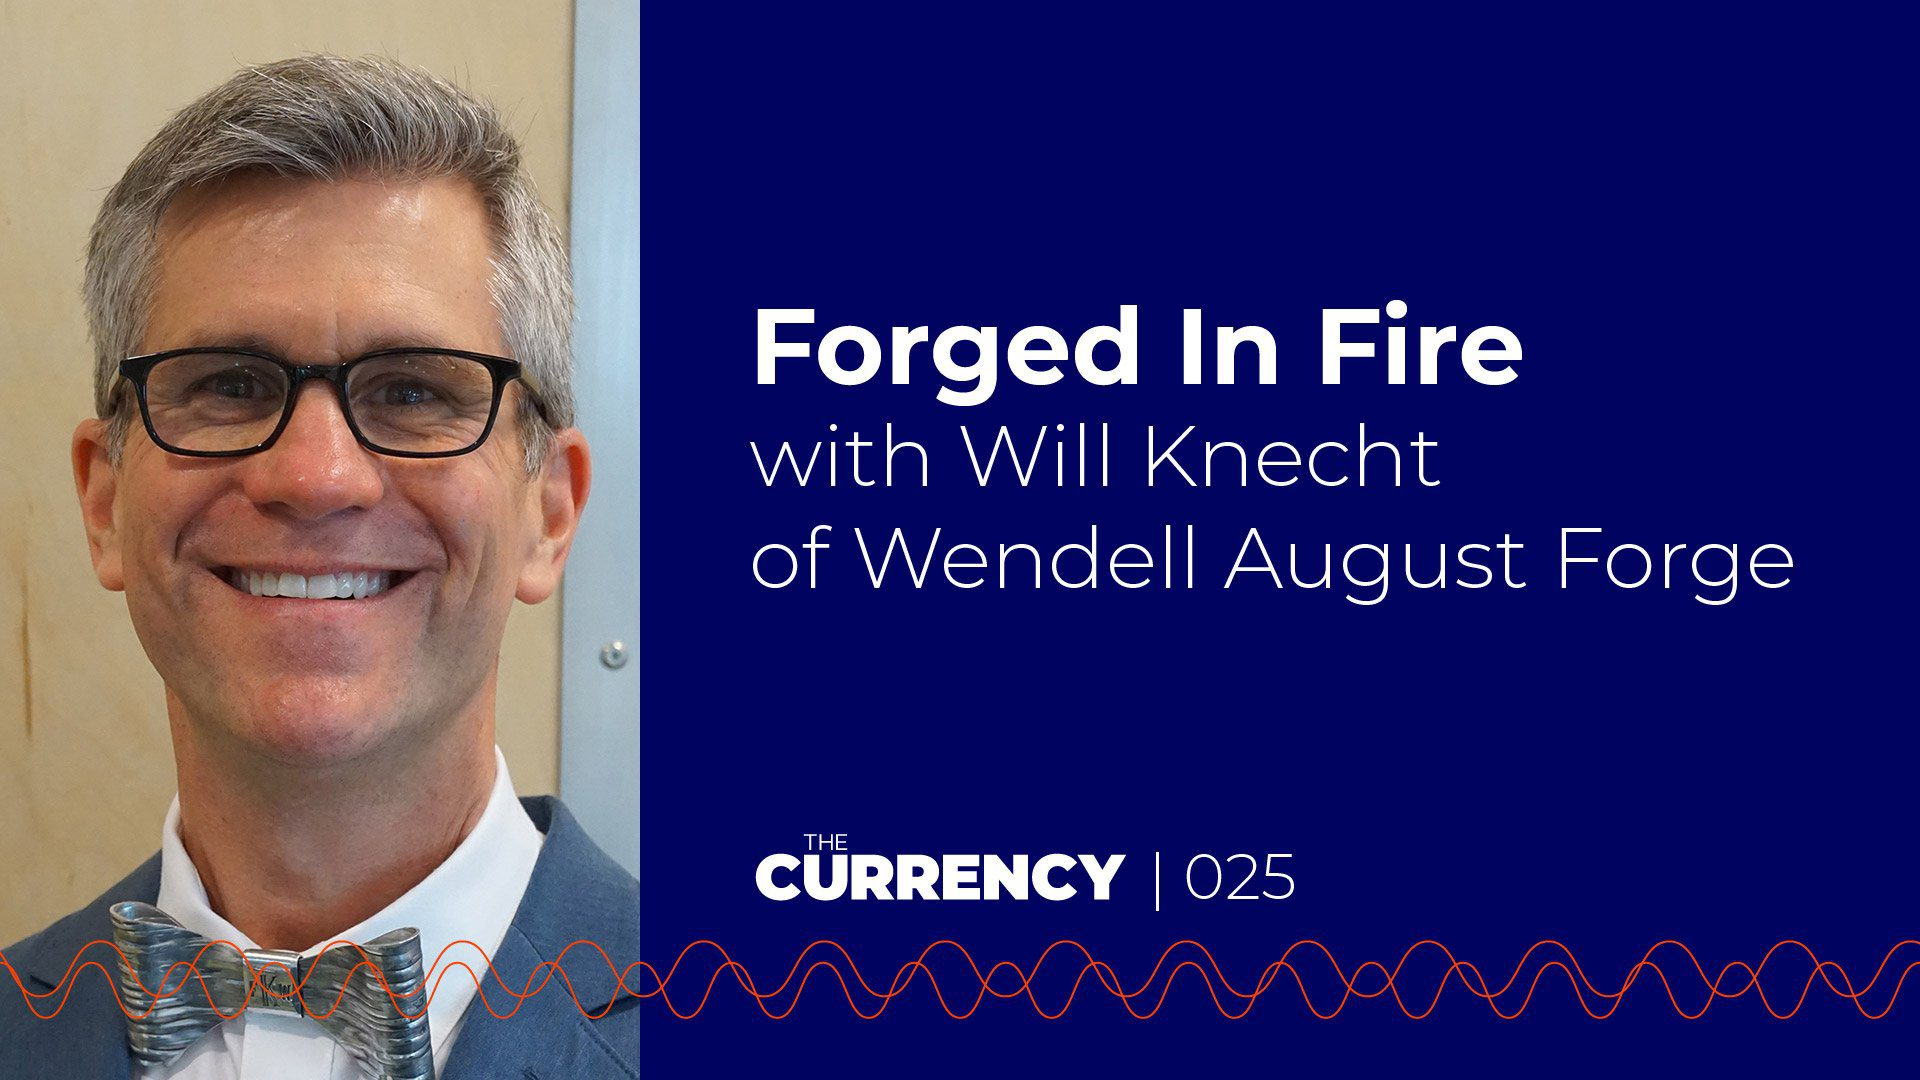 Will Knecht of Wendell August Forge on The Currency podcast.